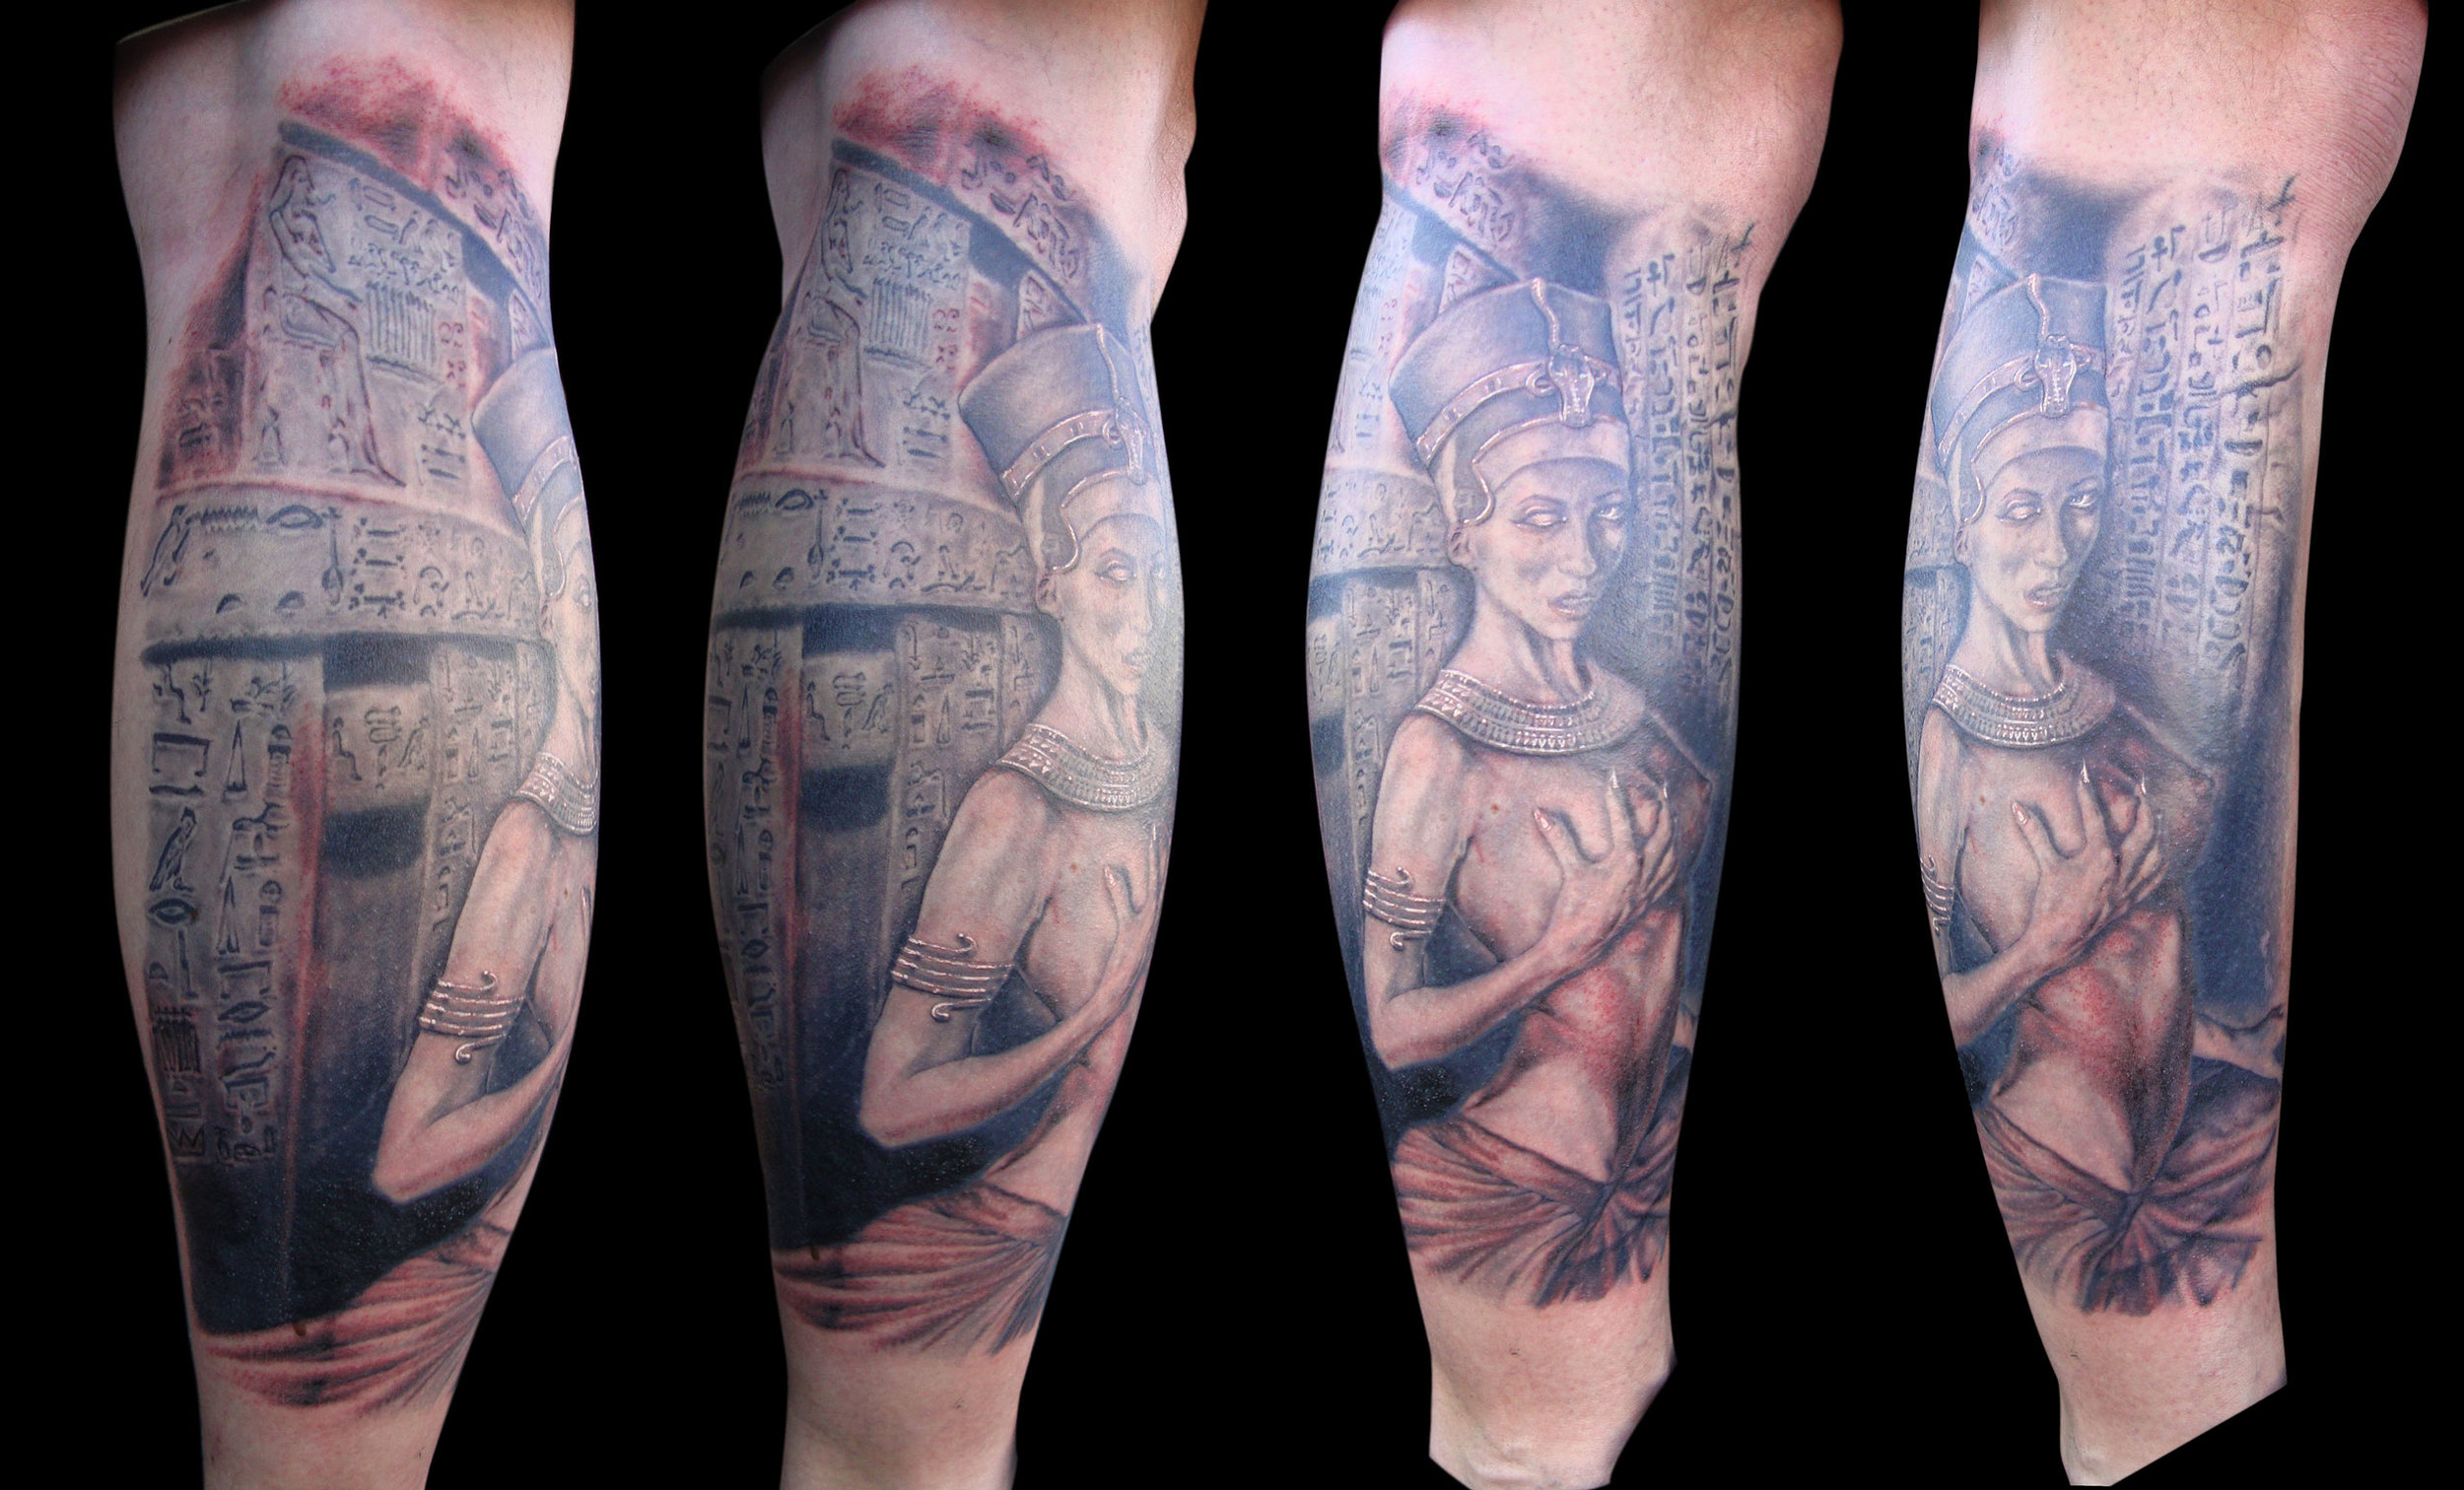 Black and Grey' Undead' Nefertiti Tattoo with False Door, (photo taken after final tattoo session, most is healed except for the reddish parts) on calf, multiple angles